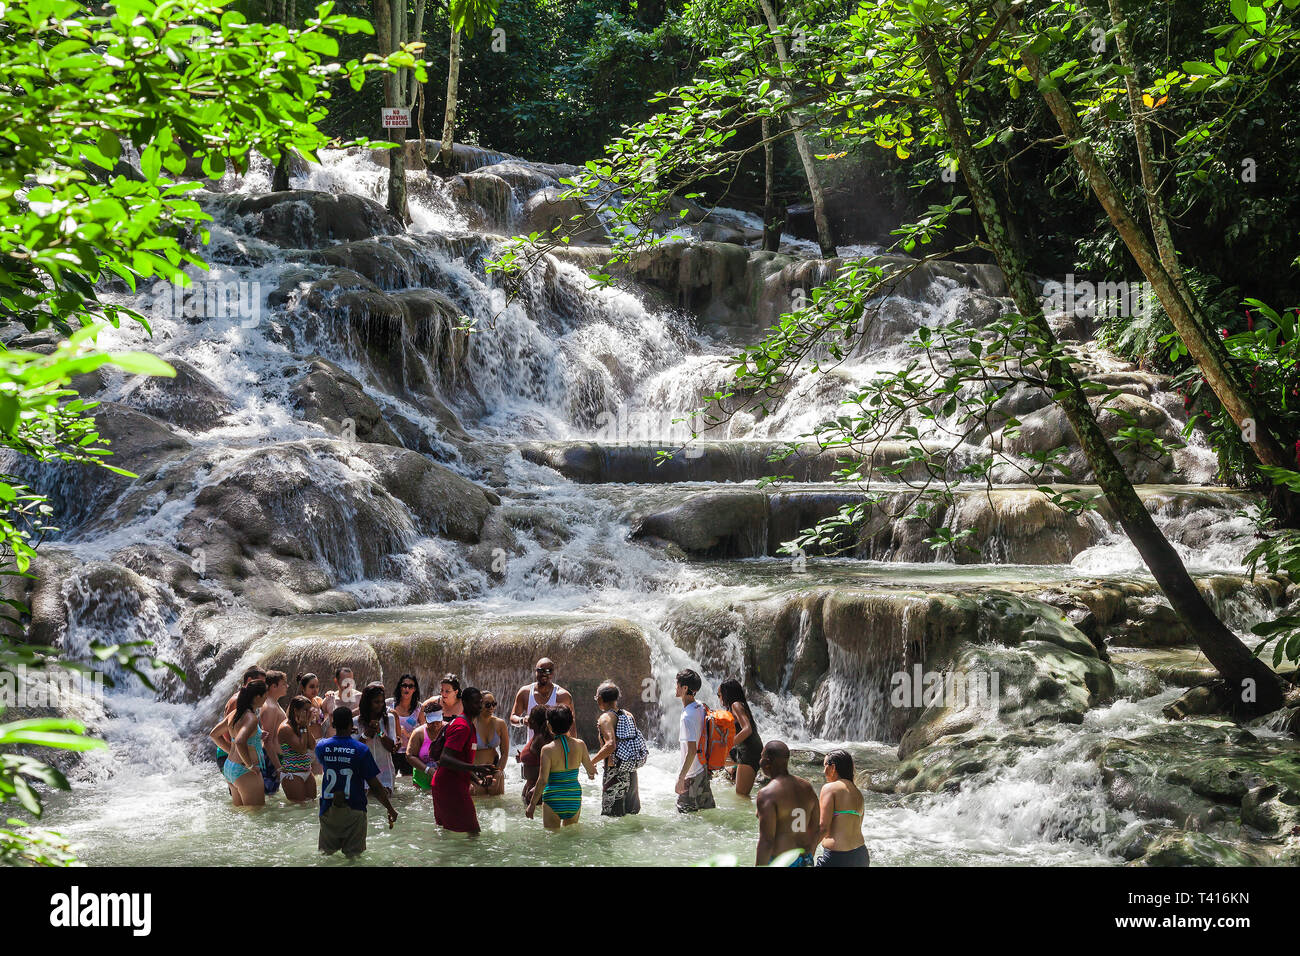 Ocho Rios, Jamaica - November 15, 2016: The Dunn's River Falls are waterfalls in Ocho Rios in Jamaica, which can be climbed by tourists. - Stock Image